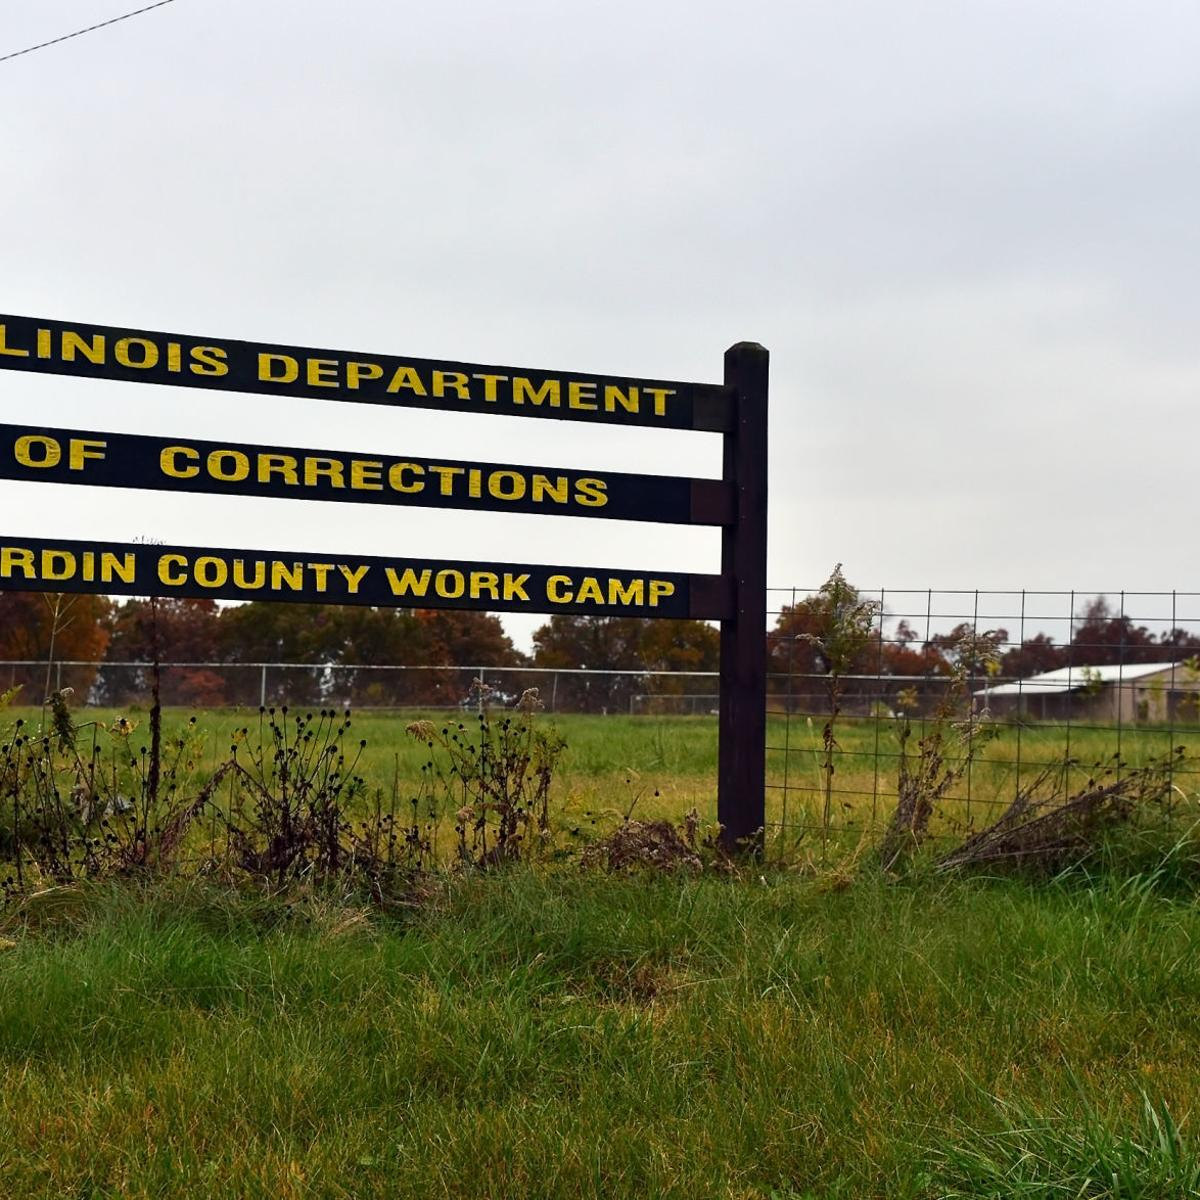 Proposal made to reopen shuttered Hardin County Work Camp as